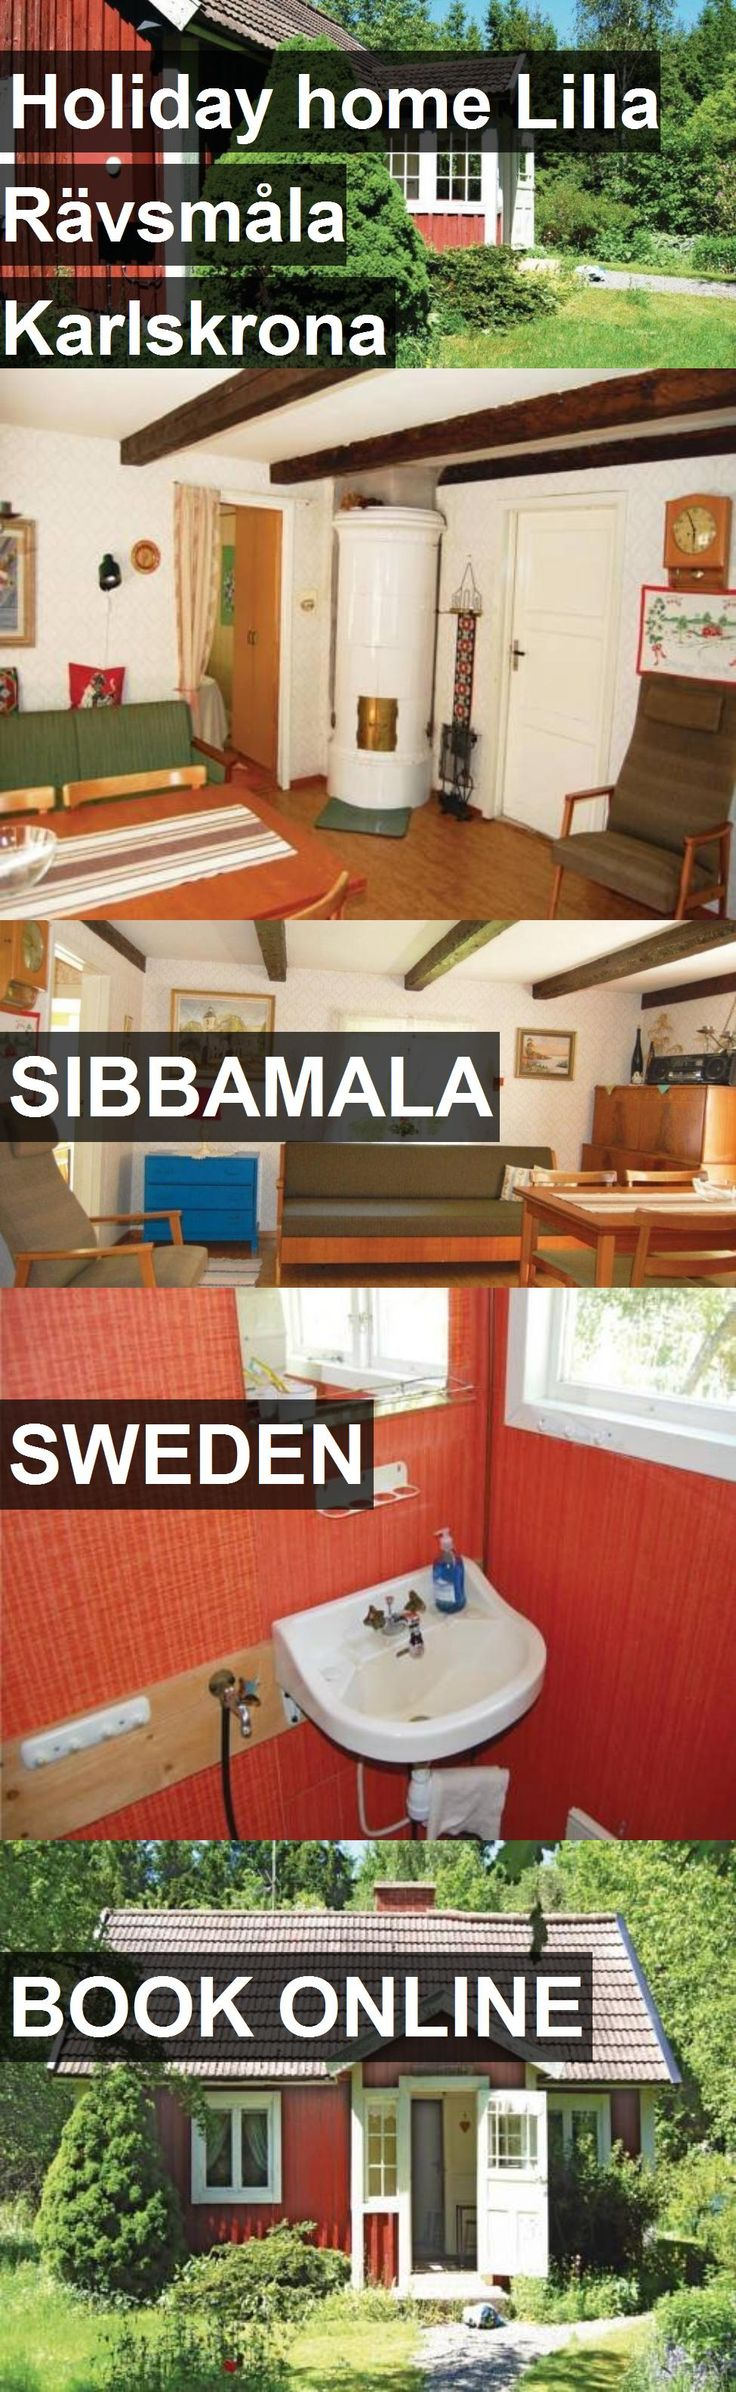 Hotel Holiday home Lilla Rävsmåla Karlskrona in Sibbamala, Sweden. For more information, photos, reviews and best prices please follow the link. #Sweden #Sibbamala #travel #vacation #hotel